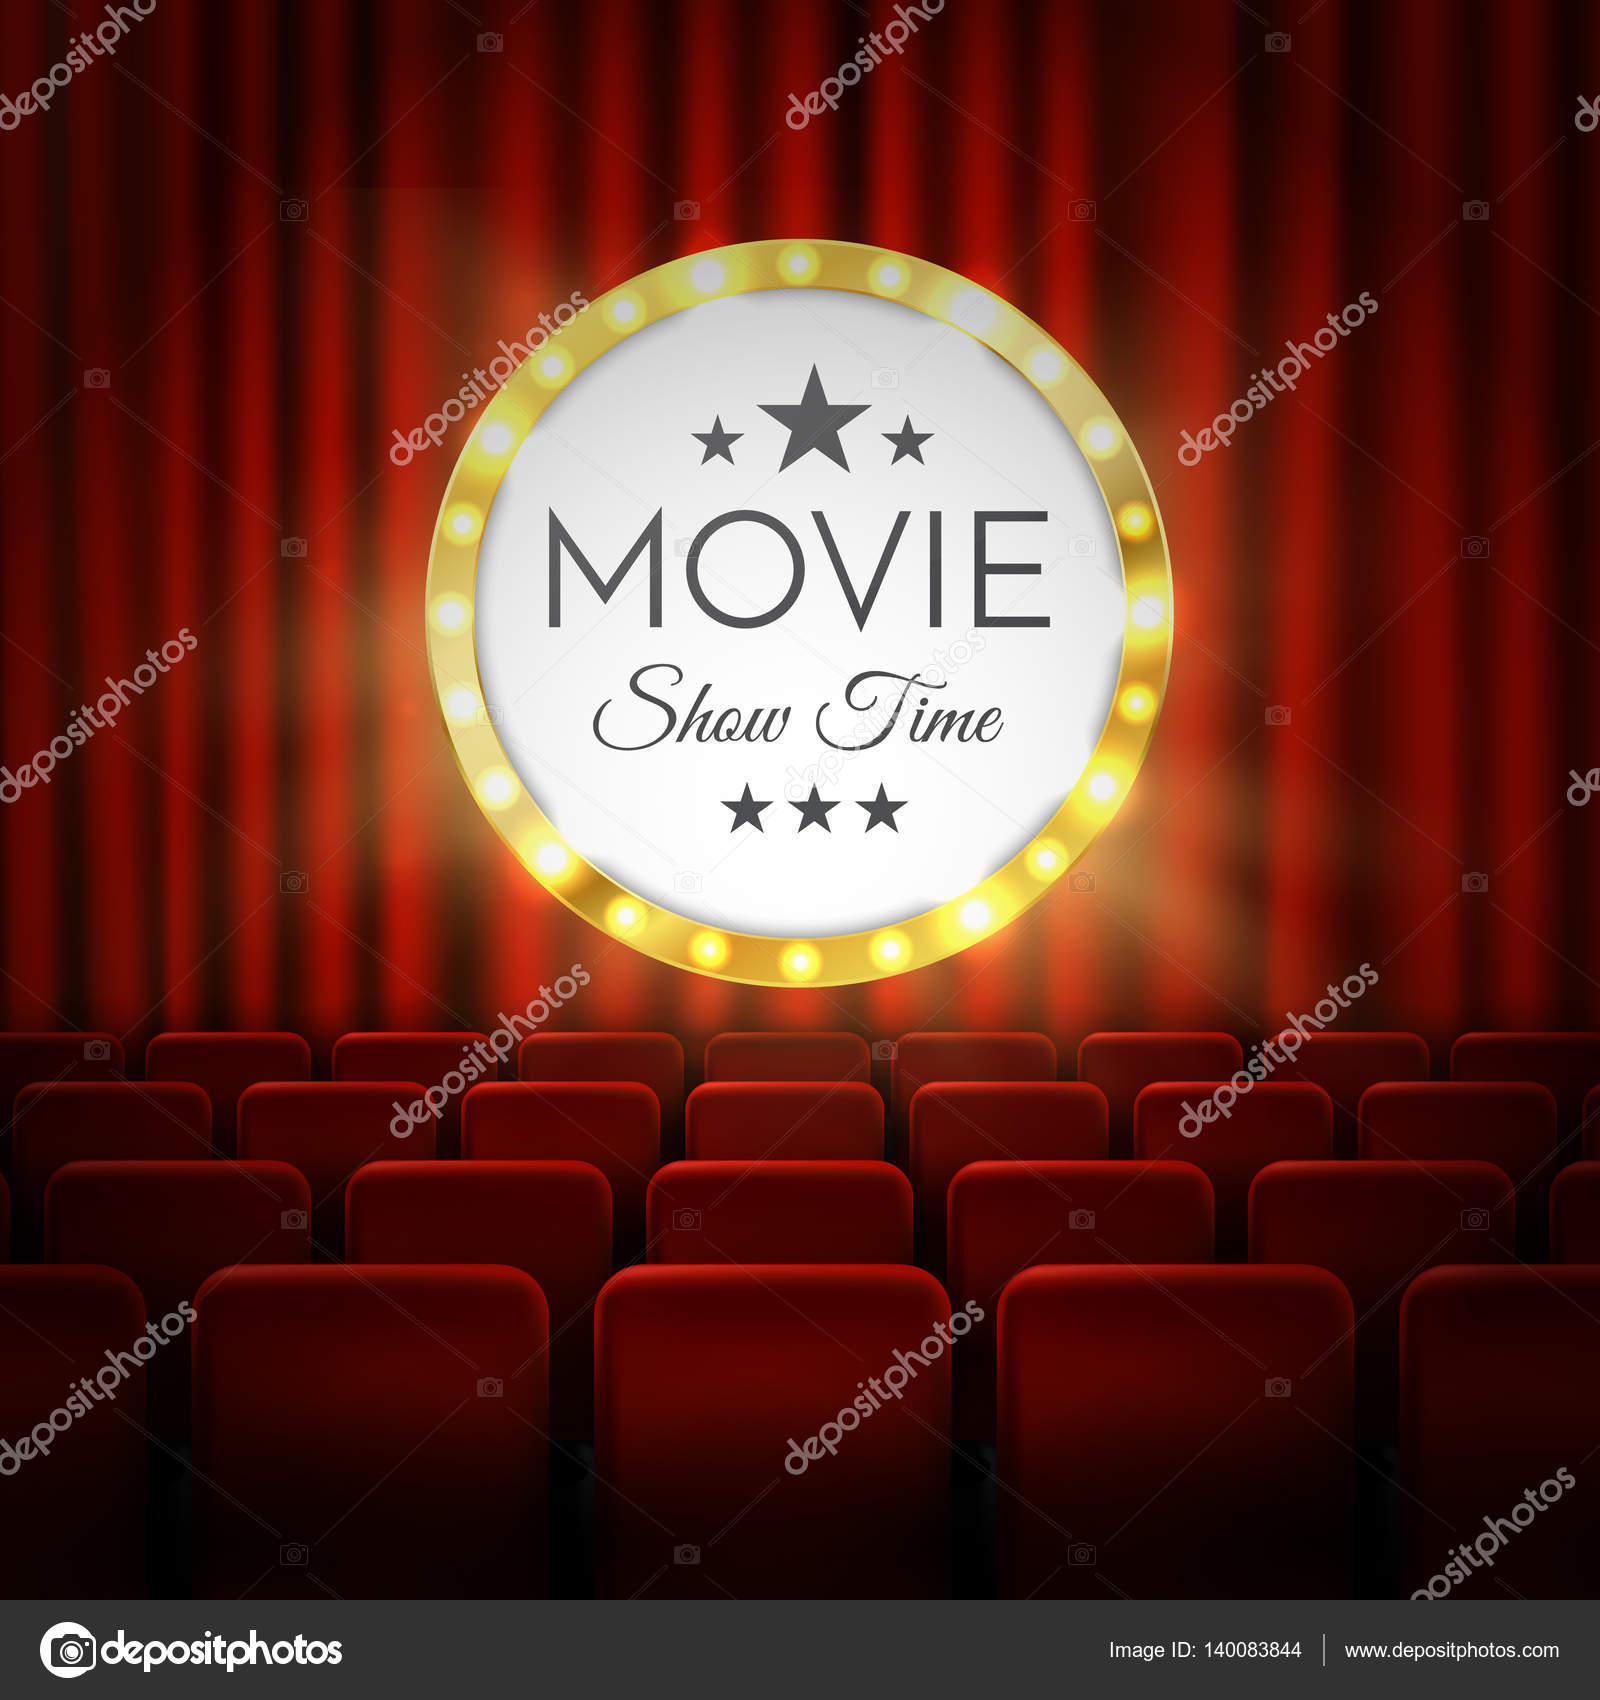 Poster design vector download - Movie Cinema Premiere Poster Design Vector Banner Stock Vector 140083844